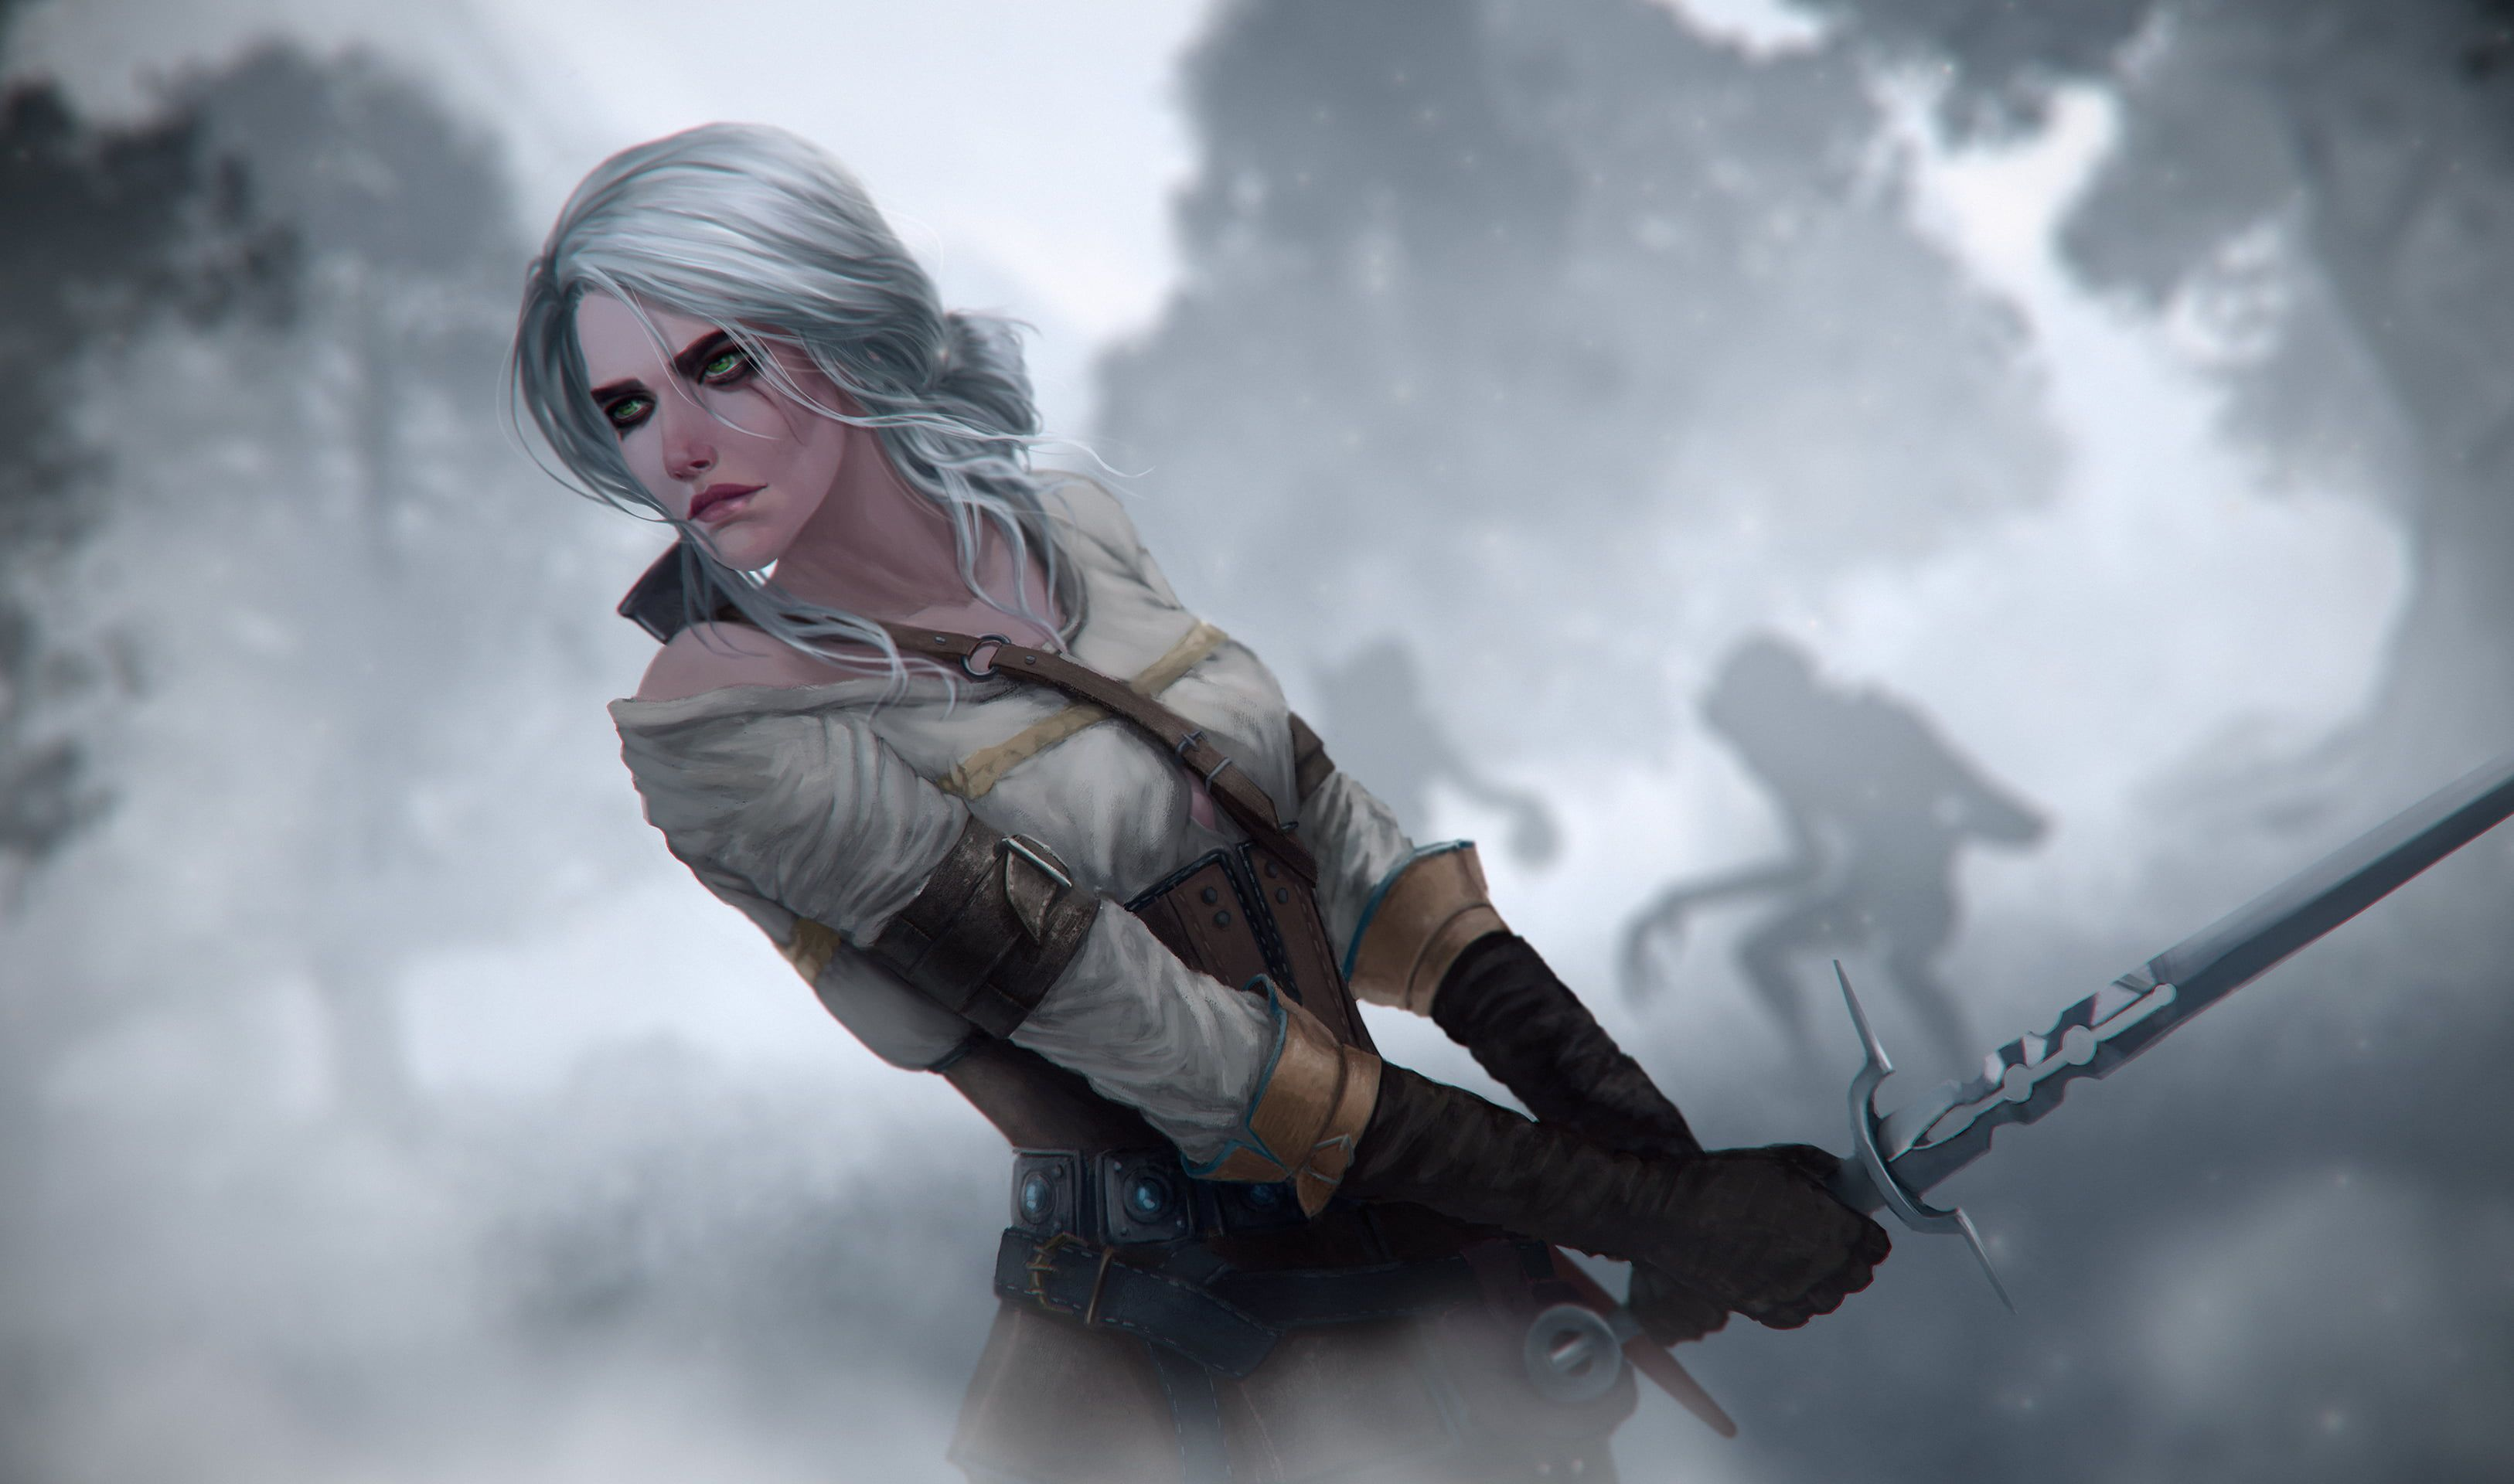 Pin By Rabbit Xd On Witcher The Witcher Ciri Witcher Ciri Ciri witcher 3 hd games artwork